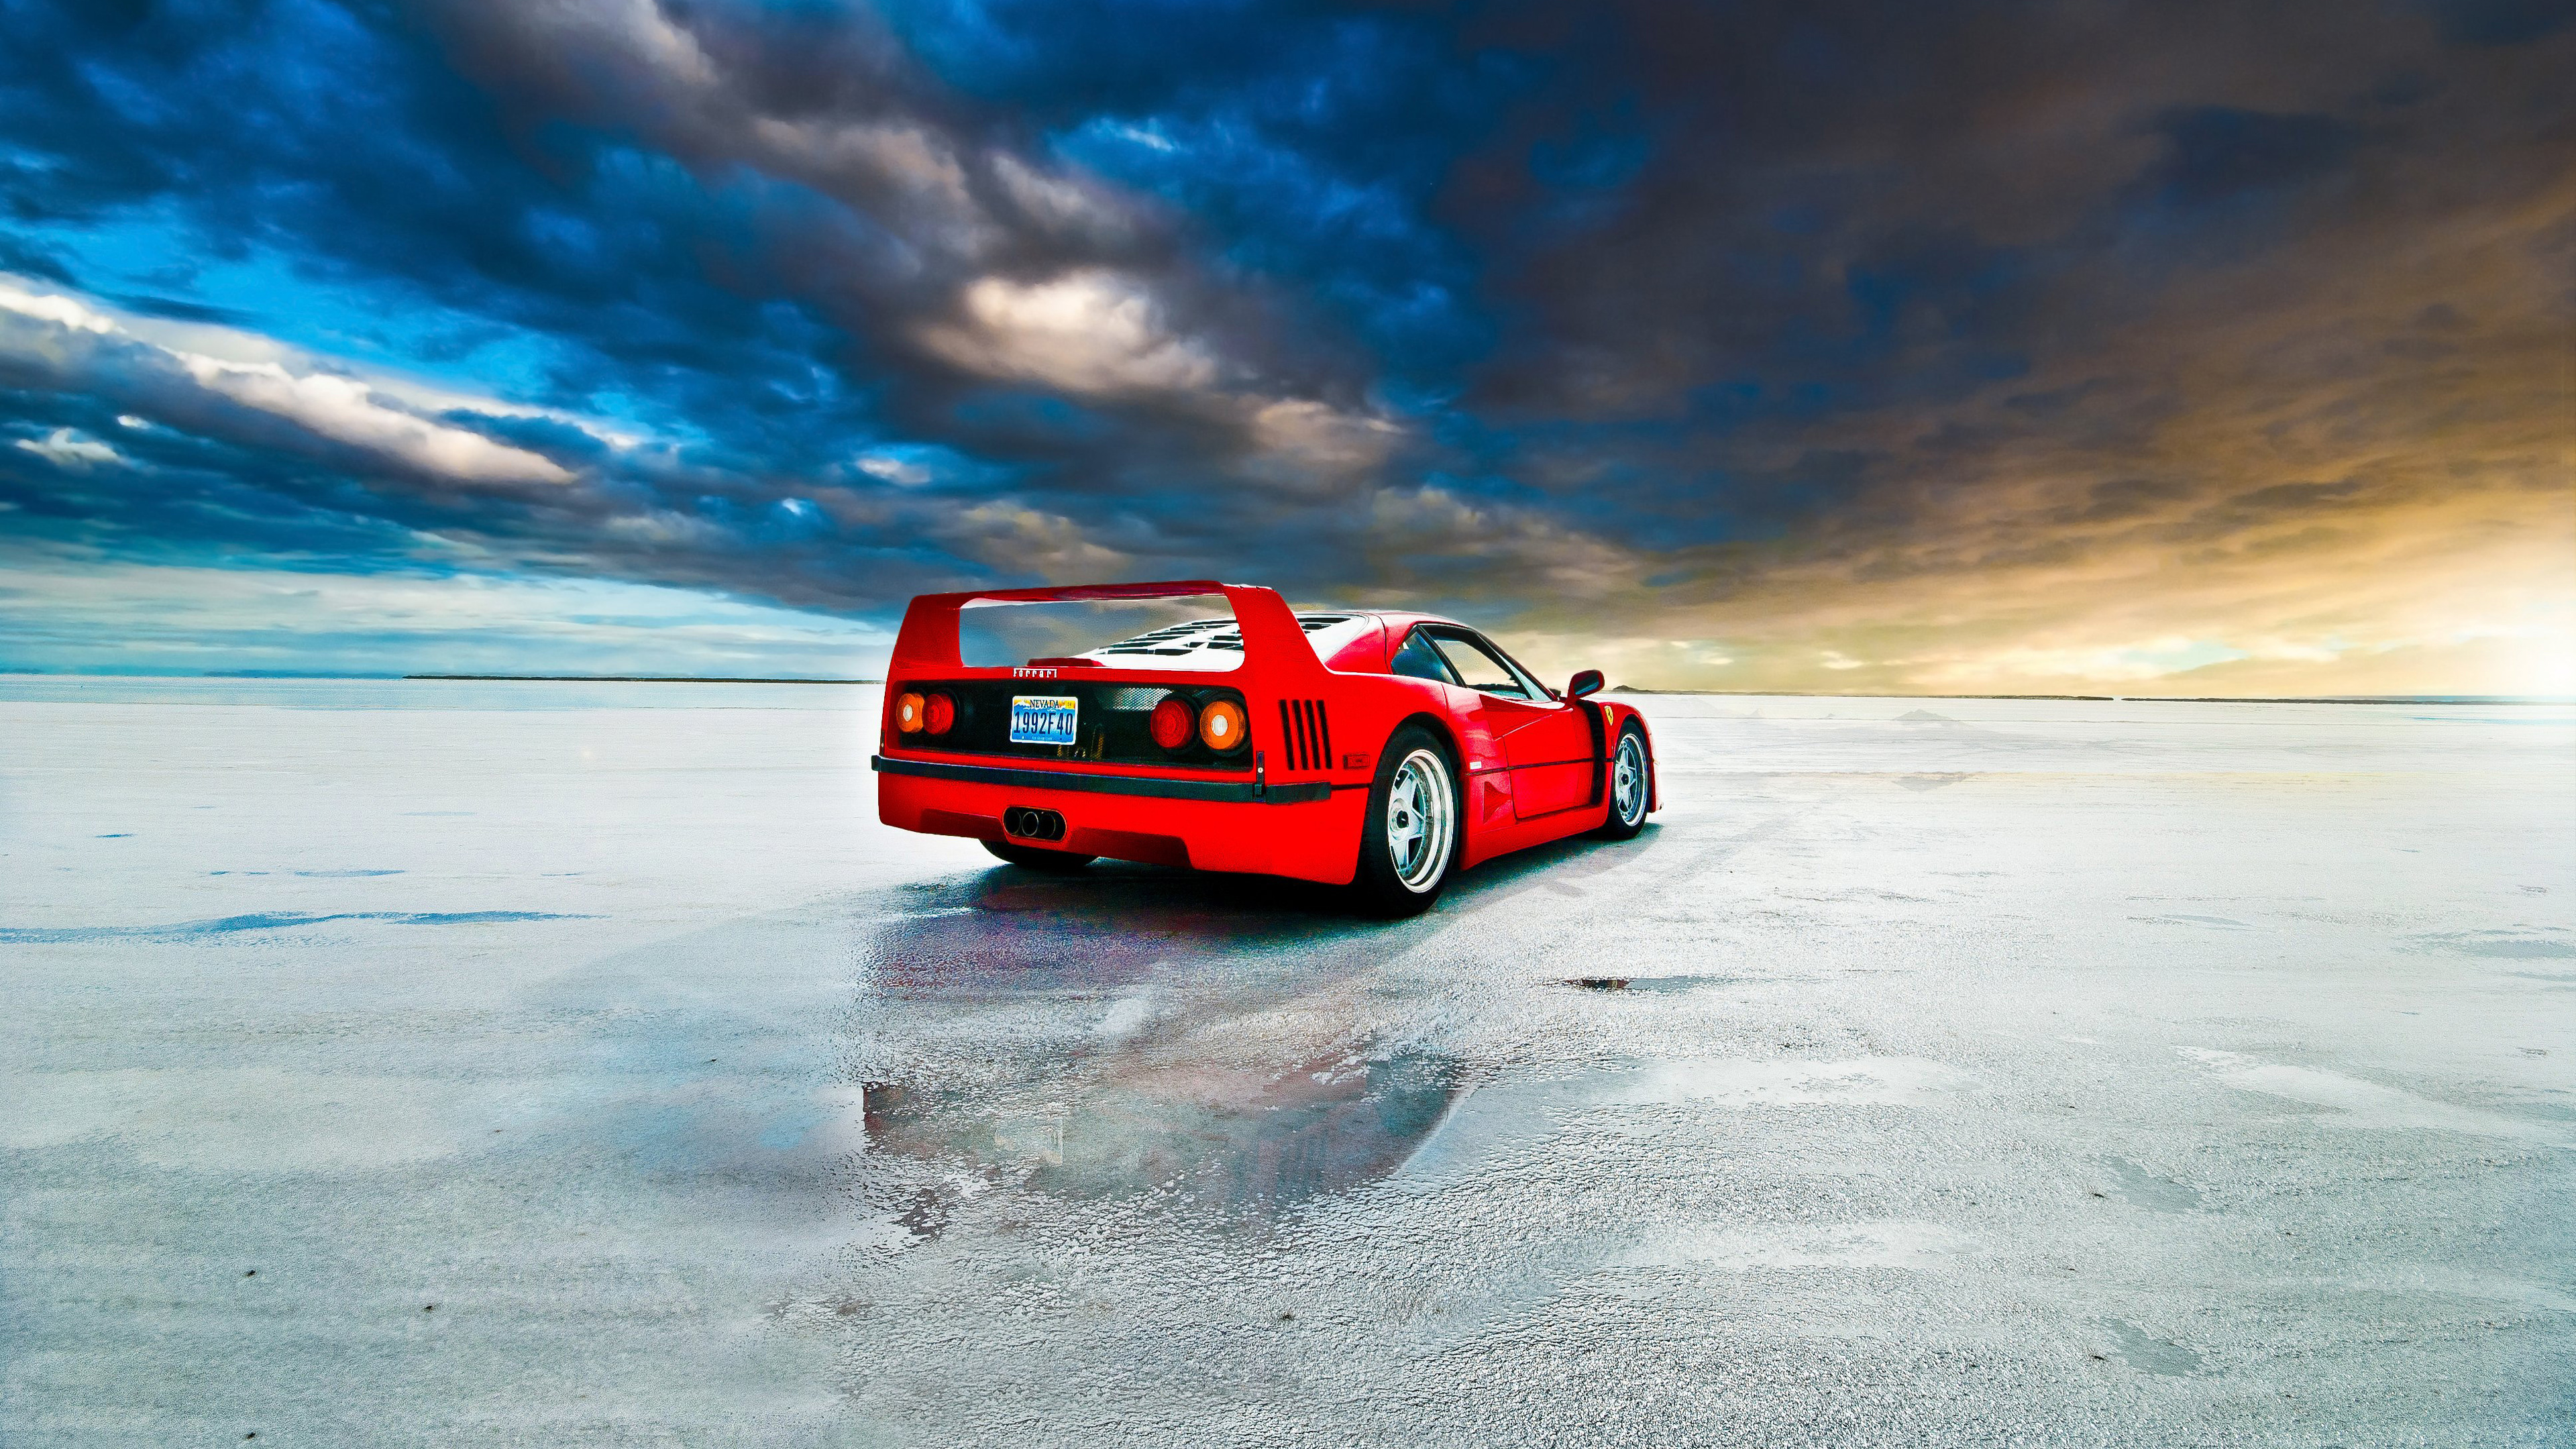 ferrari f40 1539113768 - Ferrari F40 - hd-wallpapers, ferrari wallpapers, cars wallpapers, 4k-wallpapers